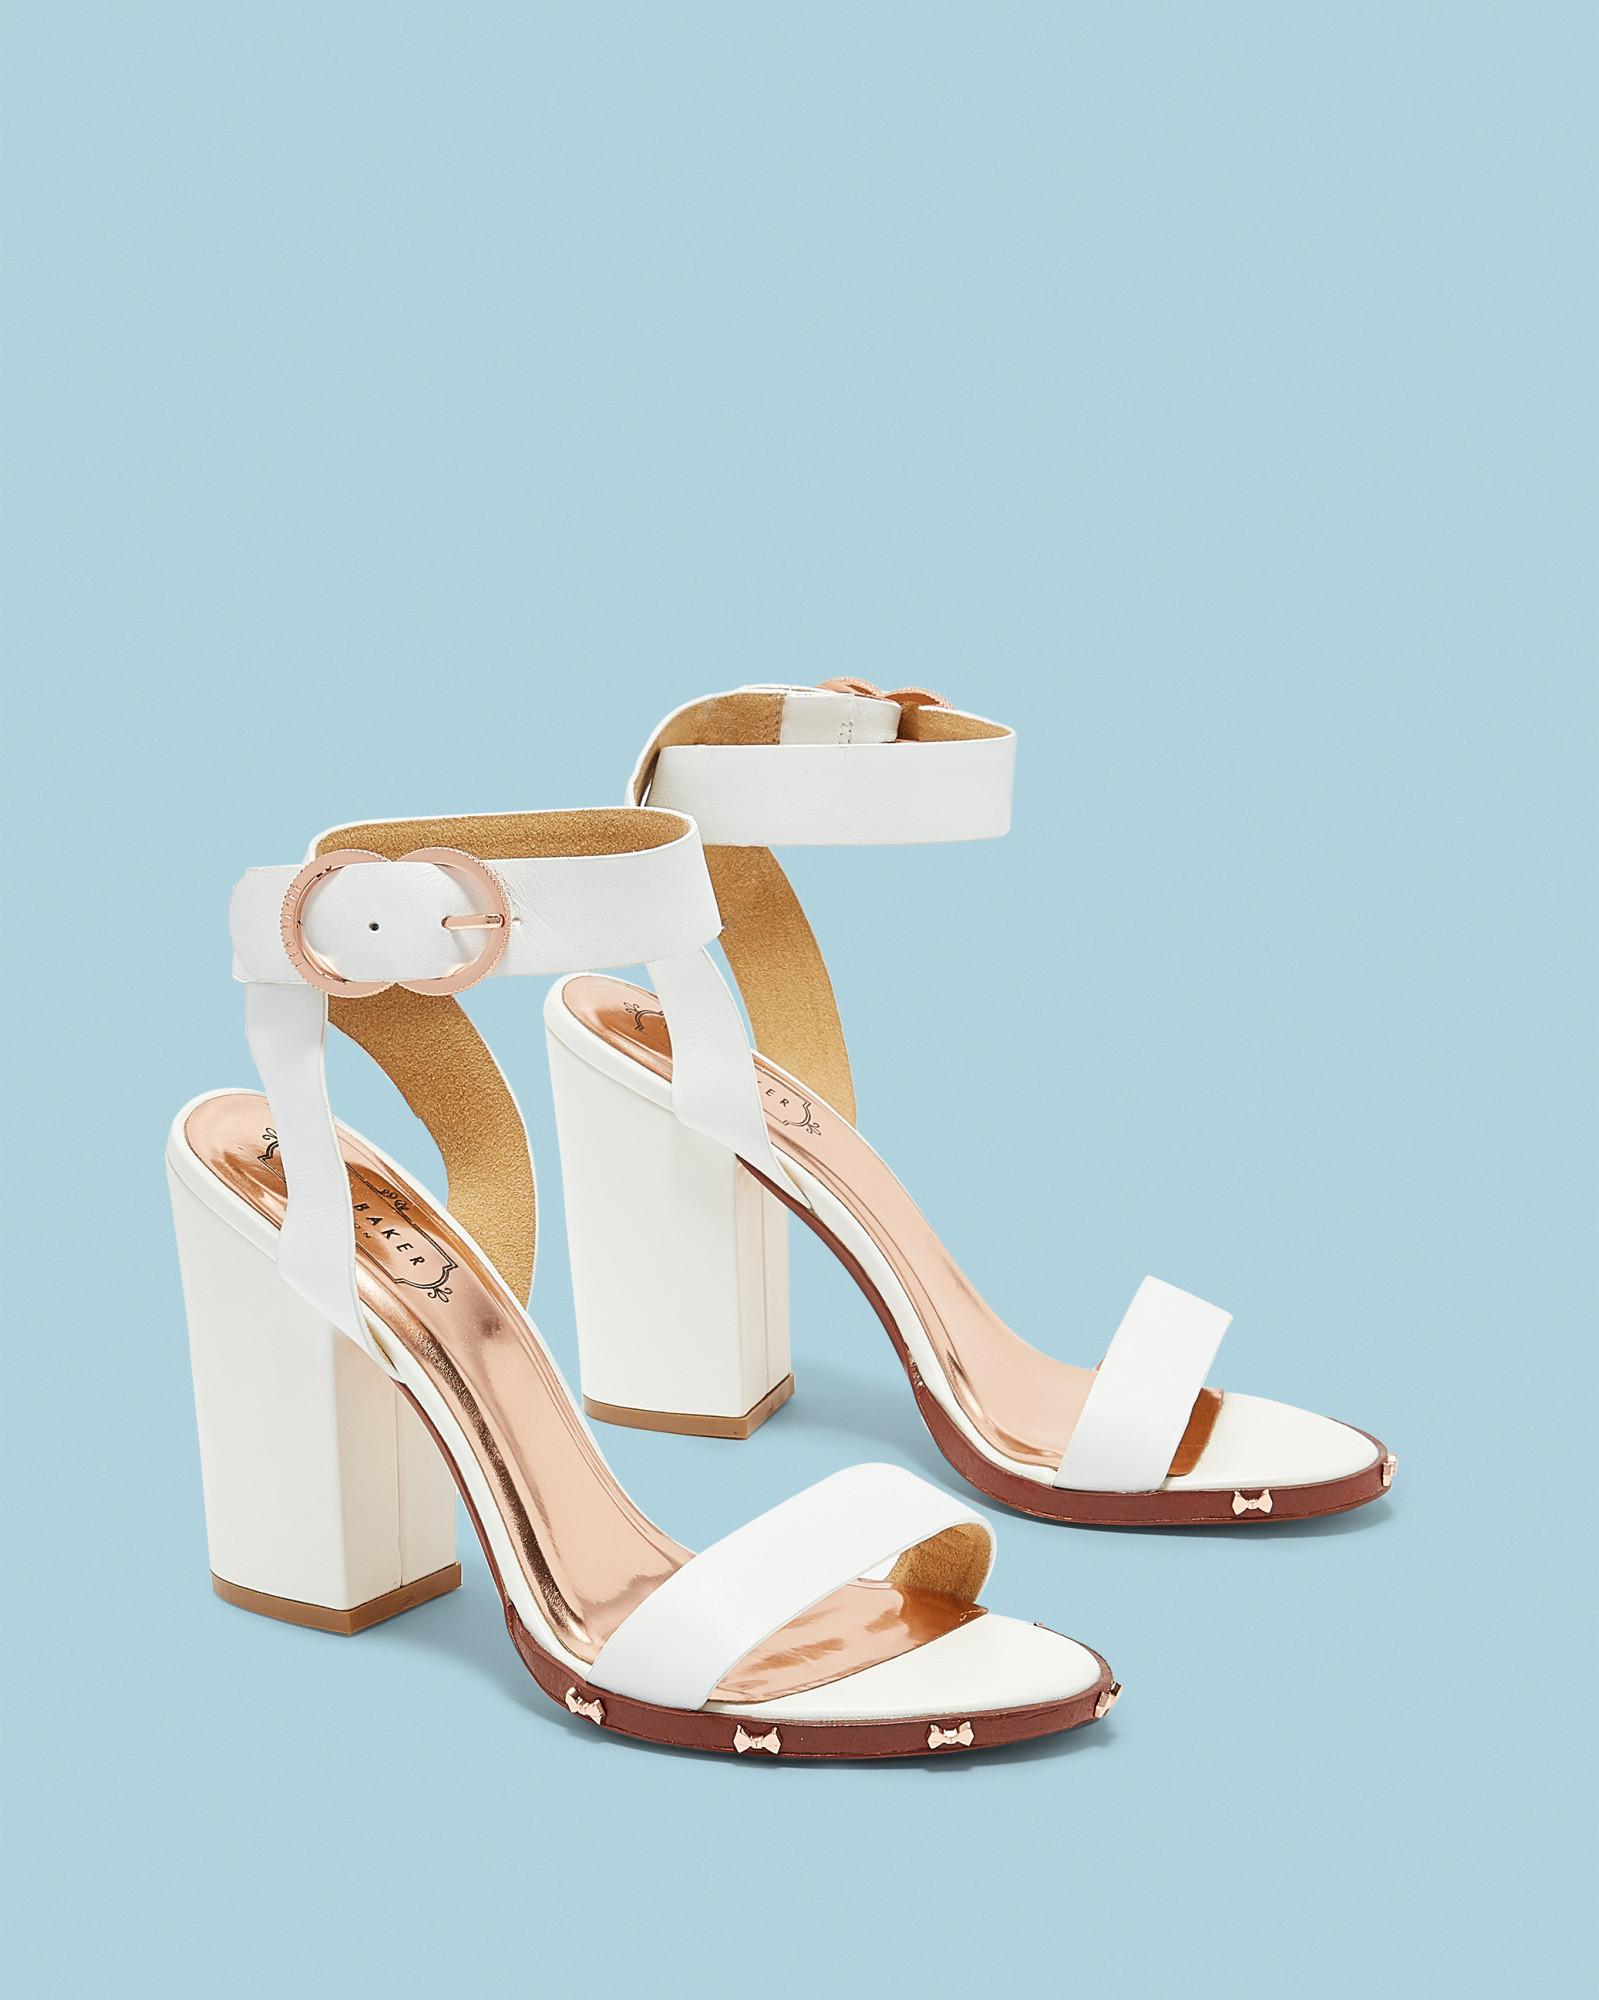 88feaa1a903 Ted Baker Studded Bow Block Heel Sandals in White - Lyst